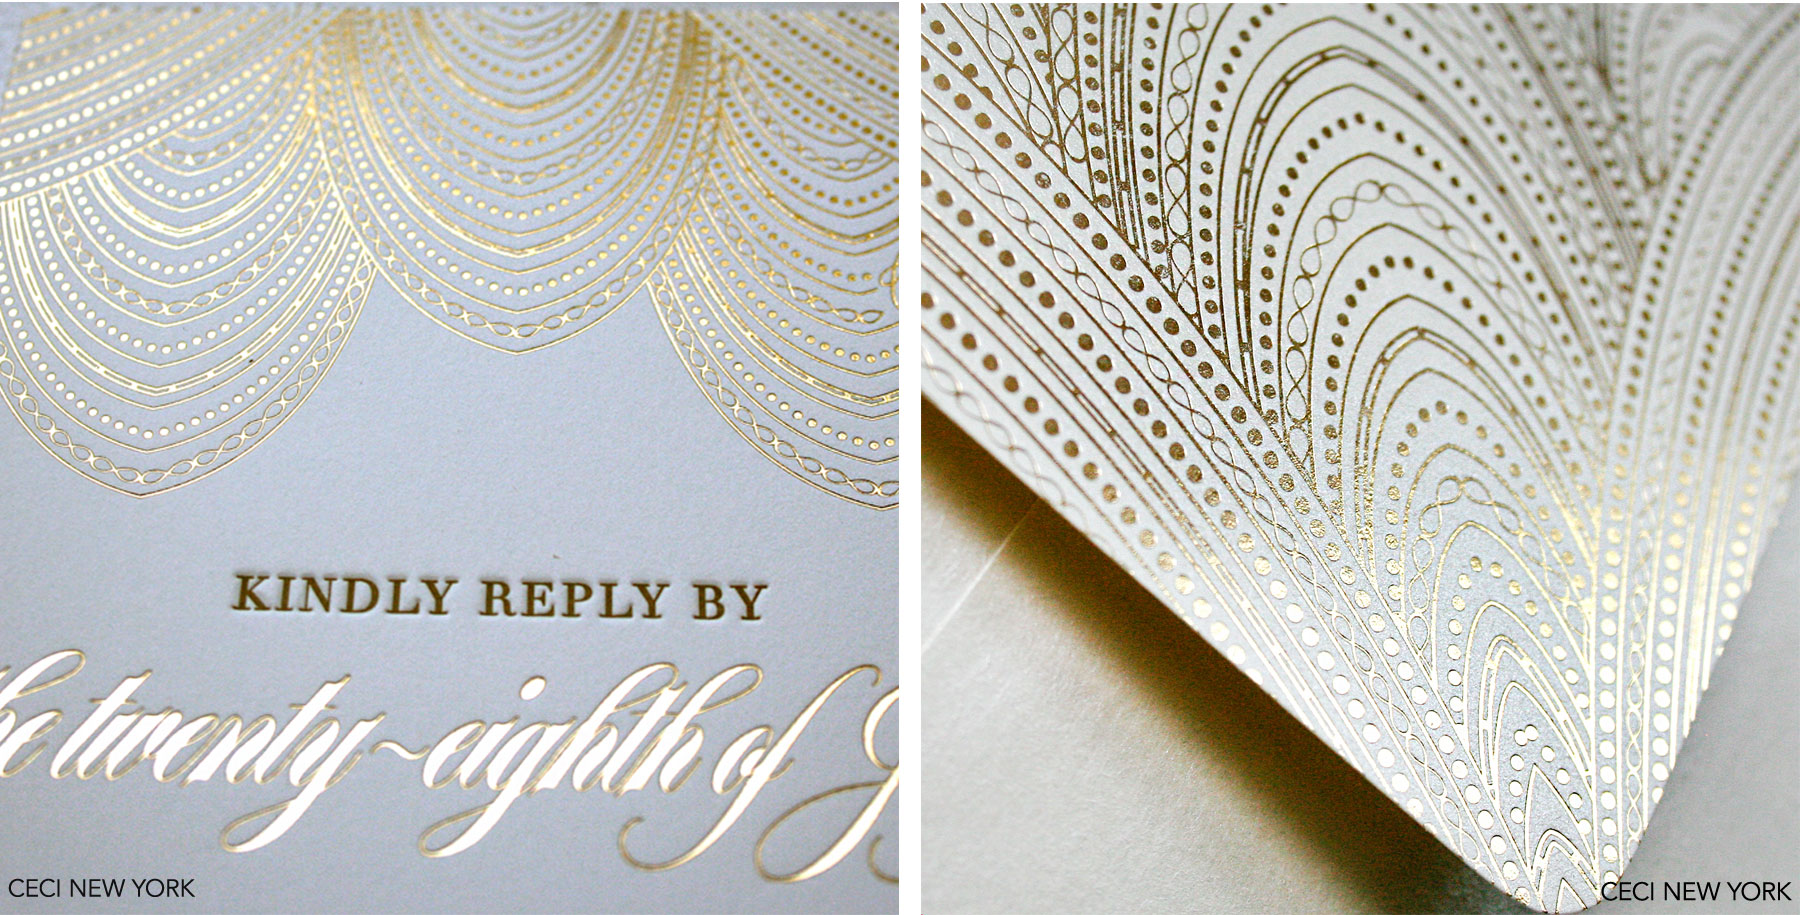 Luxury Wedding Invitations by Ceci New York - Our Muse - custom wedding invitations, luxury wedding invitations, couture, racquet club, texas, glamour, gold, ceci new york - Be inspired by Cameron and Winston's glamorous wedding in Texas - custom wedding invitations, luxury wedding invitations, couture, racquet club, texas, glamour, gold, ceci new york